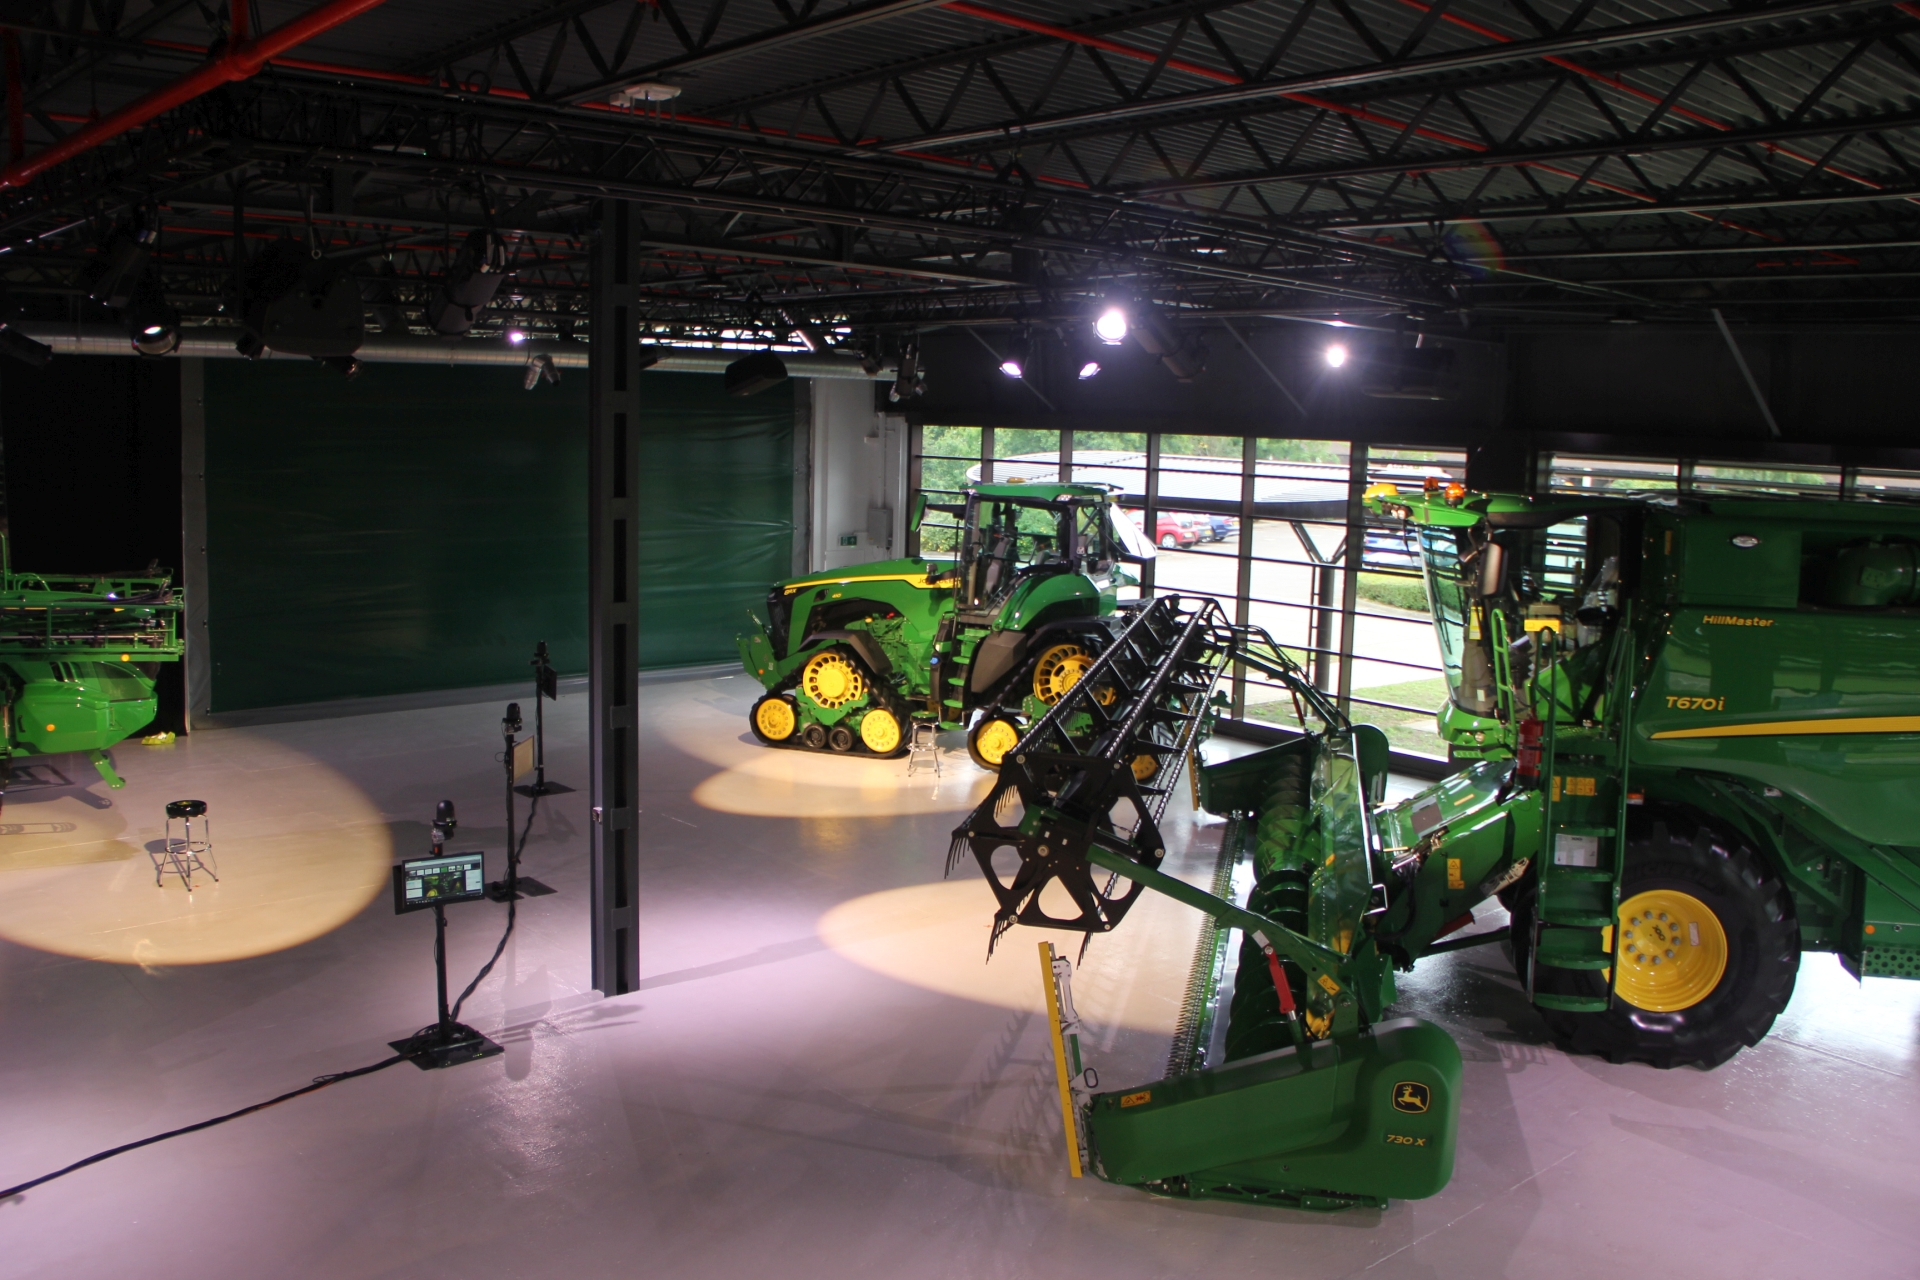 OneBigStar Production for Streamed Product Demonstration at John Deere